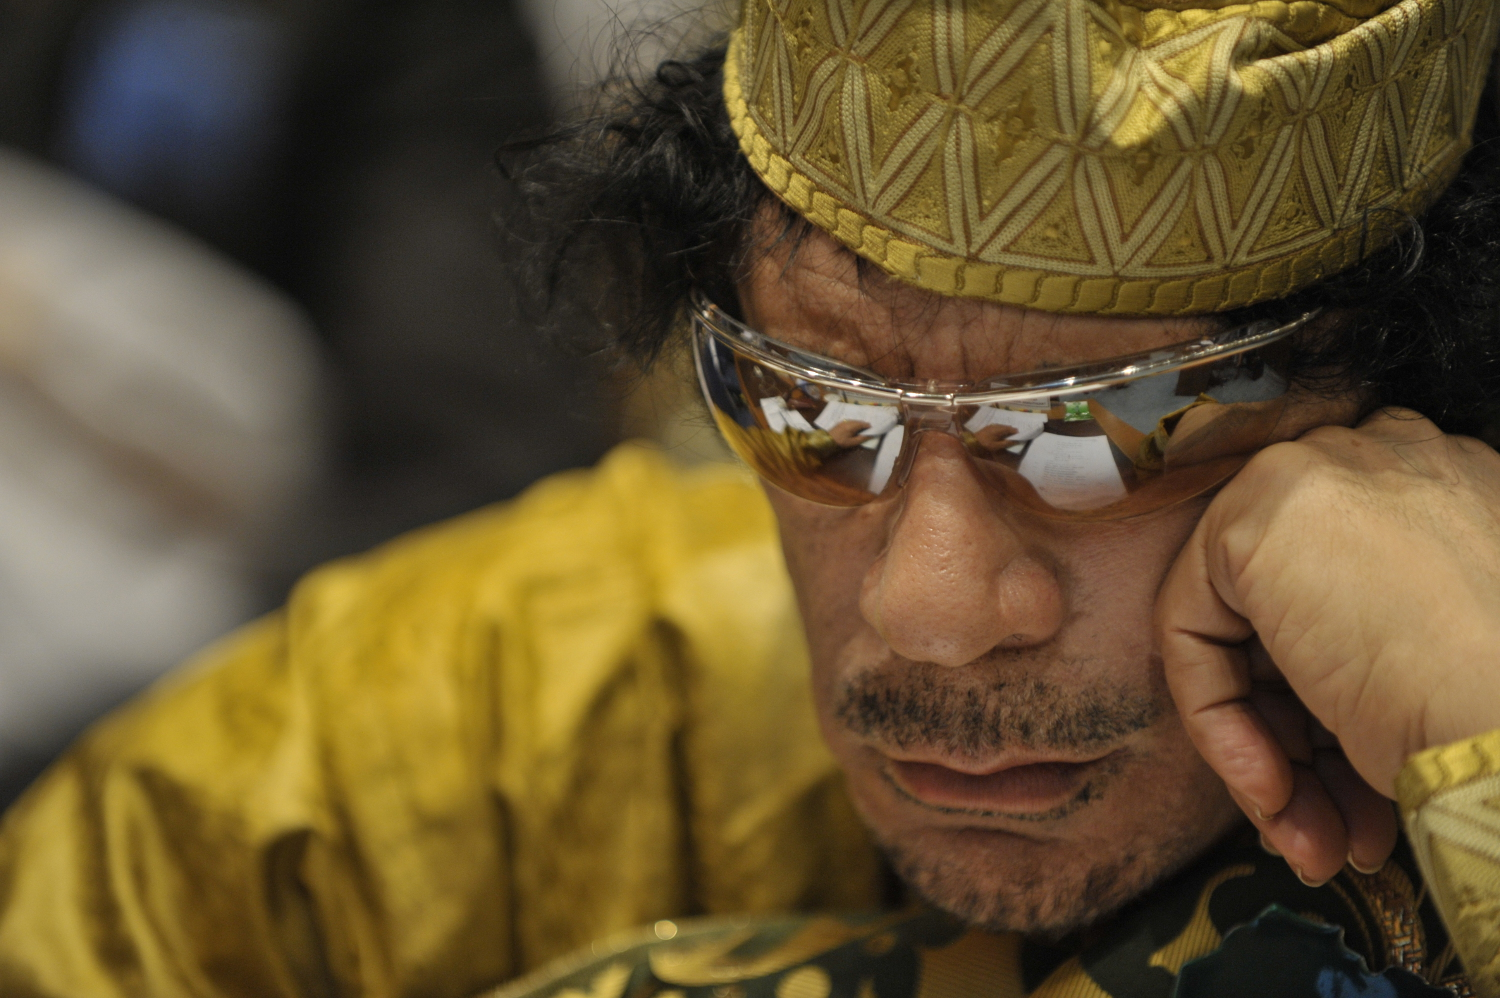 Muammar_al-Gaddafi,_12th_AU_Summit,_090202-N-0506A-324